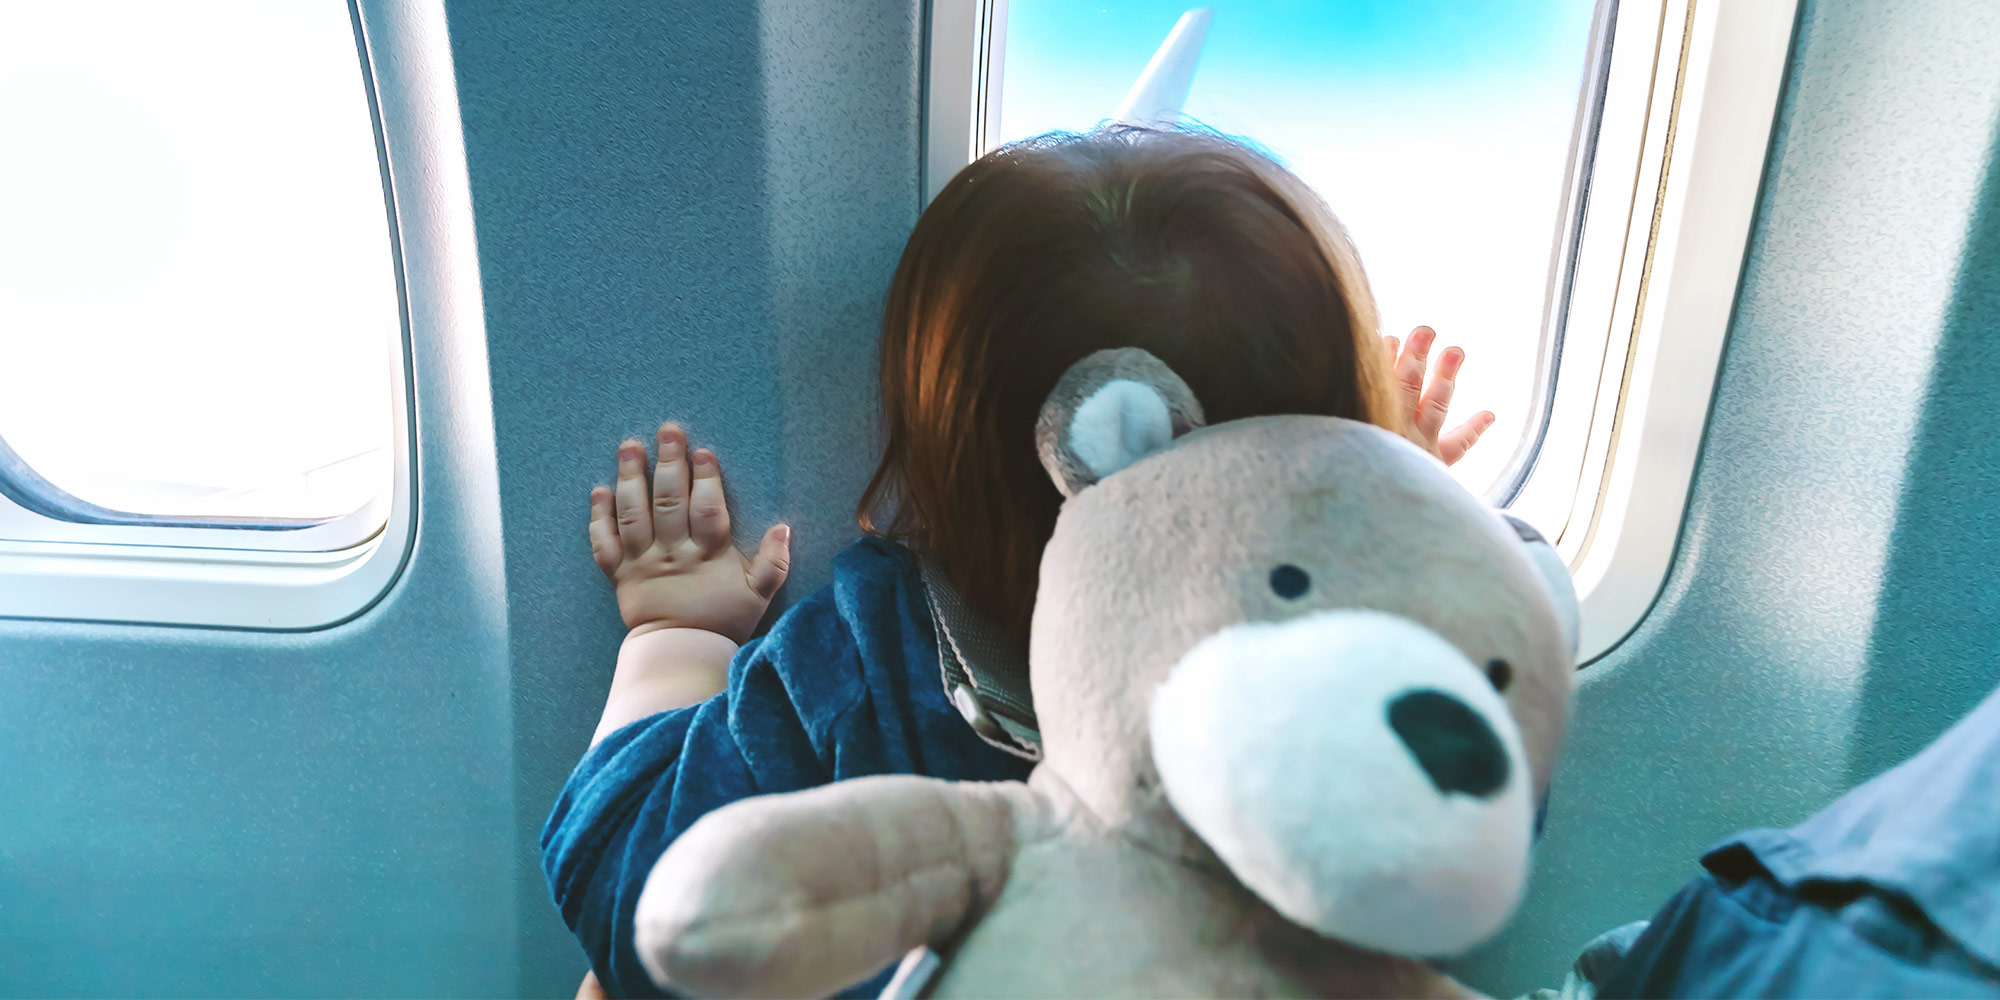 toddler at airplane window